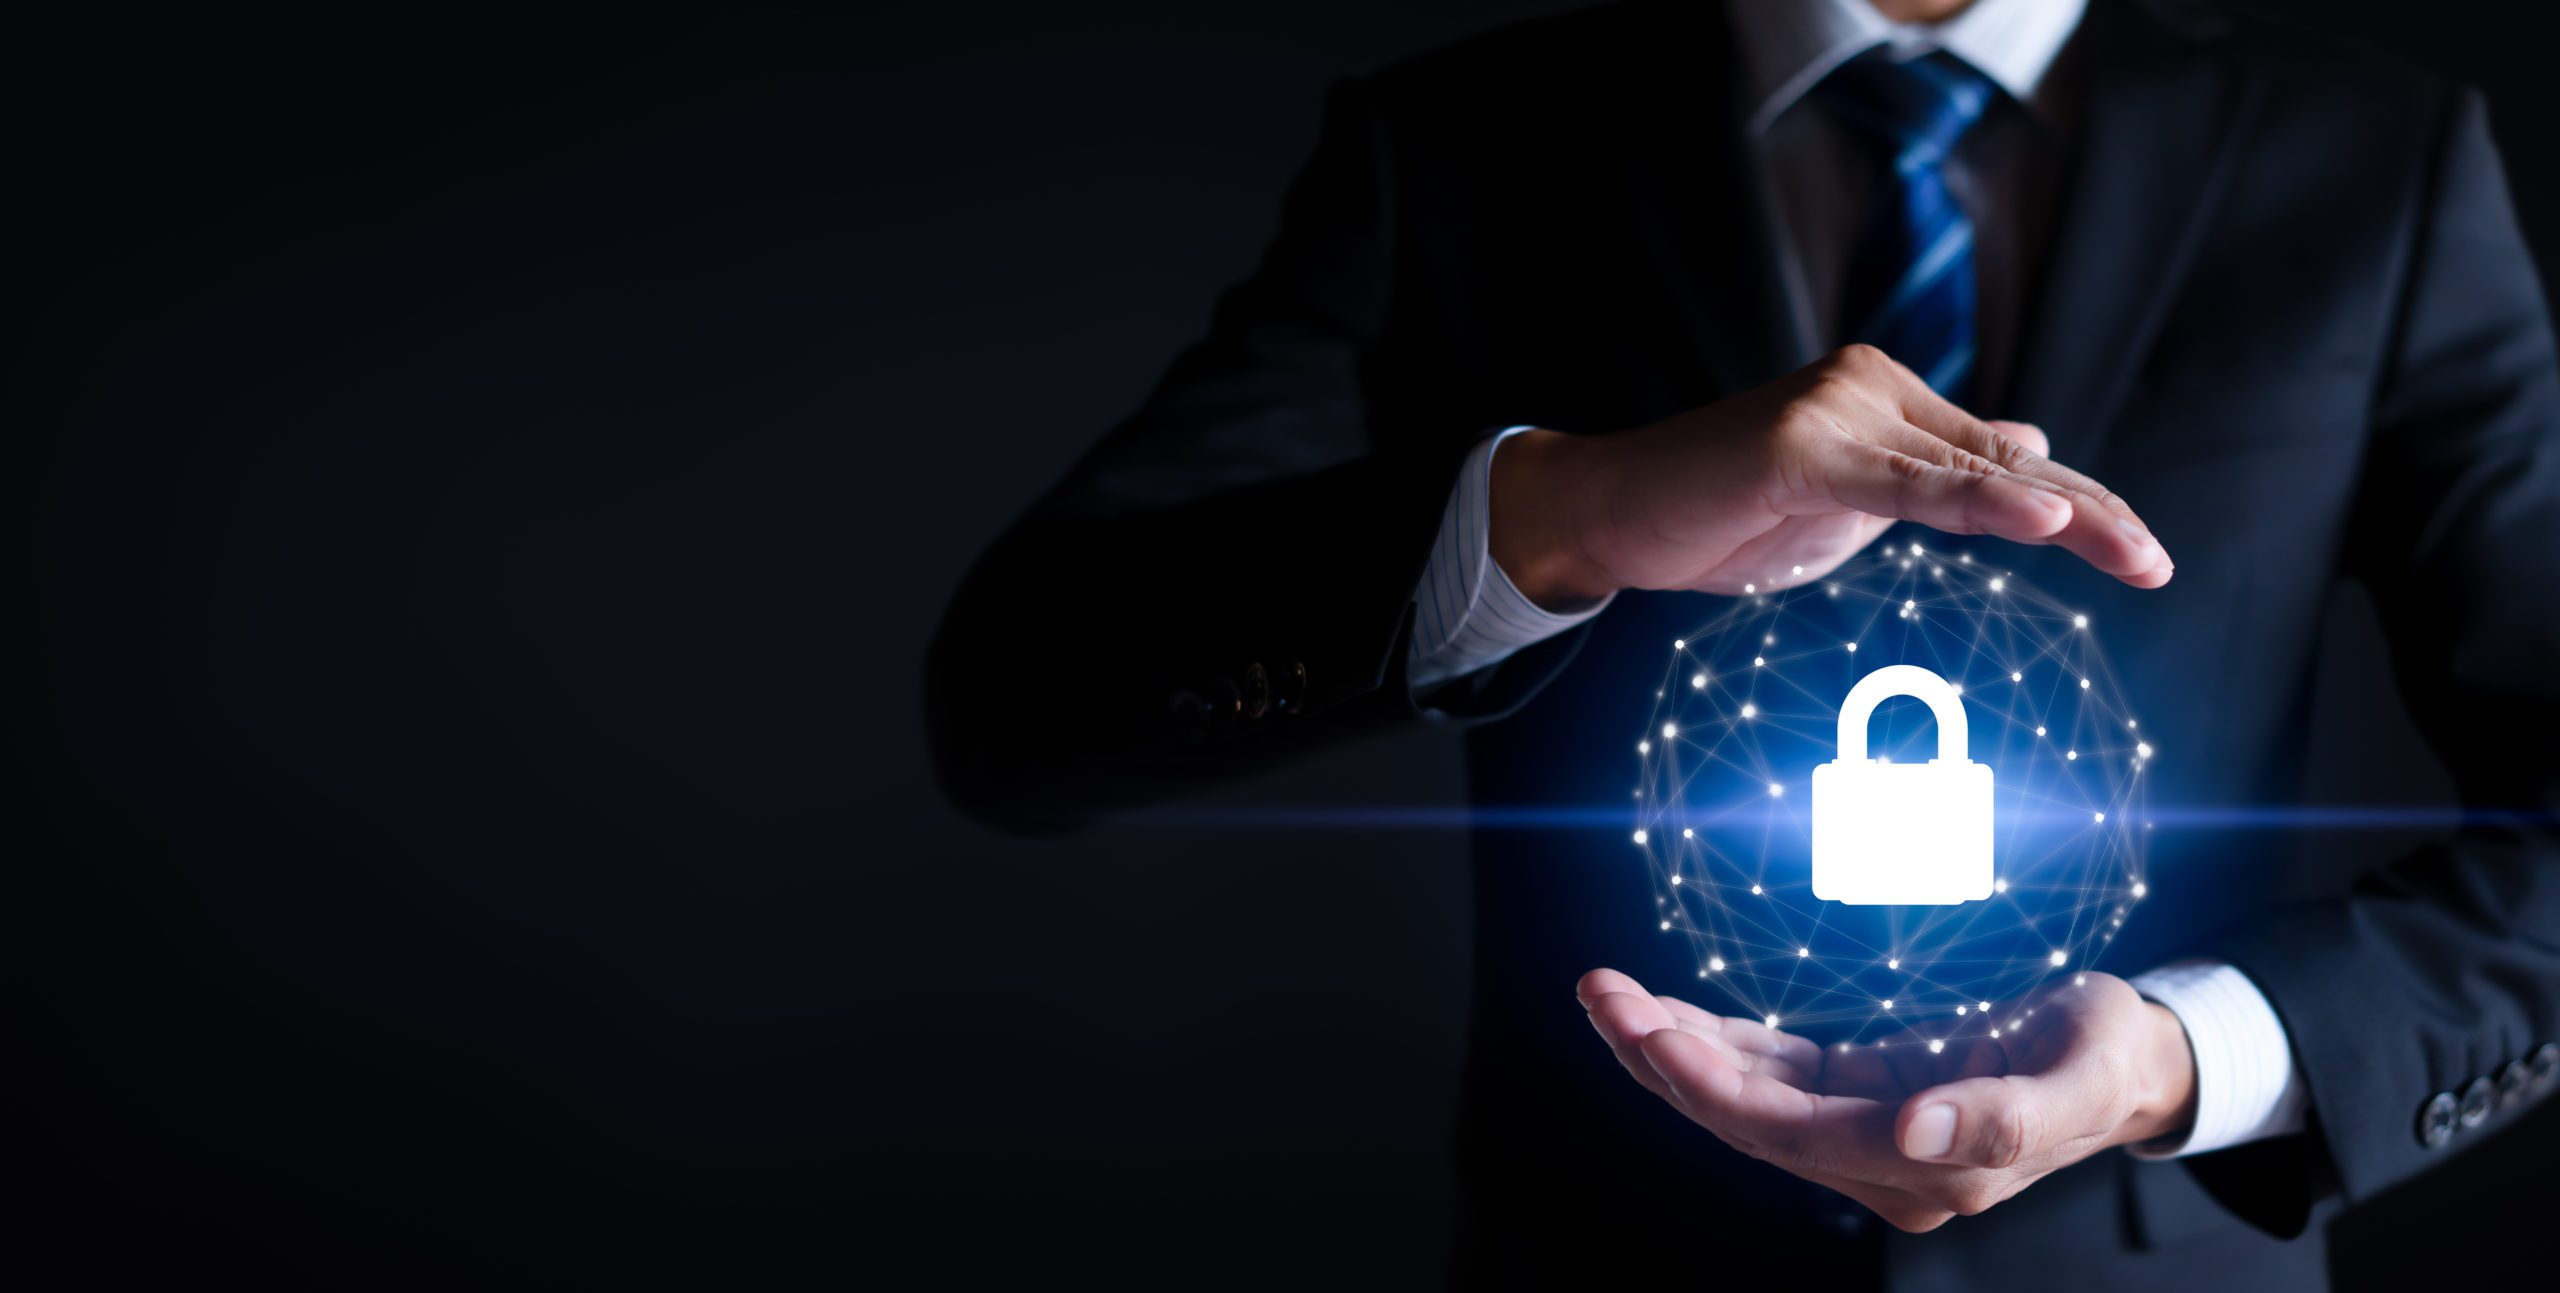 Cybersecurity and information technology security services concept. Businessman with protective gesture Lock icon to protect the security, copy space